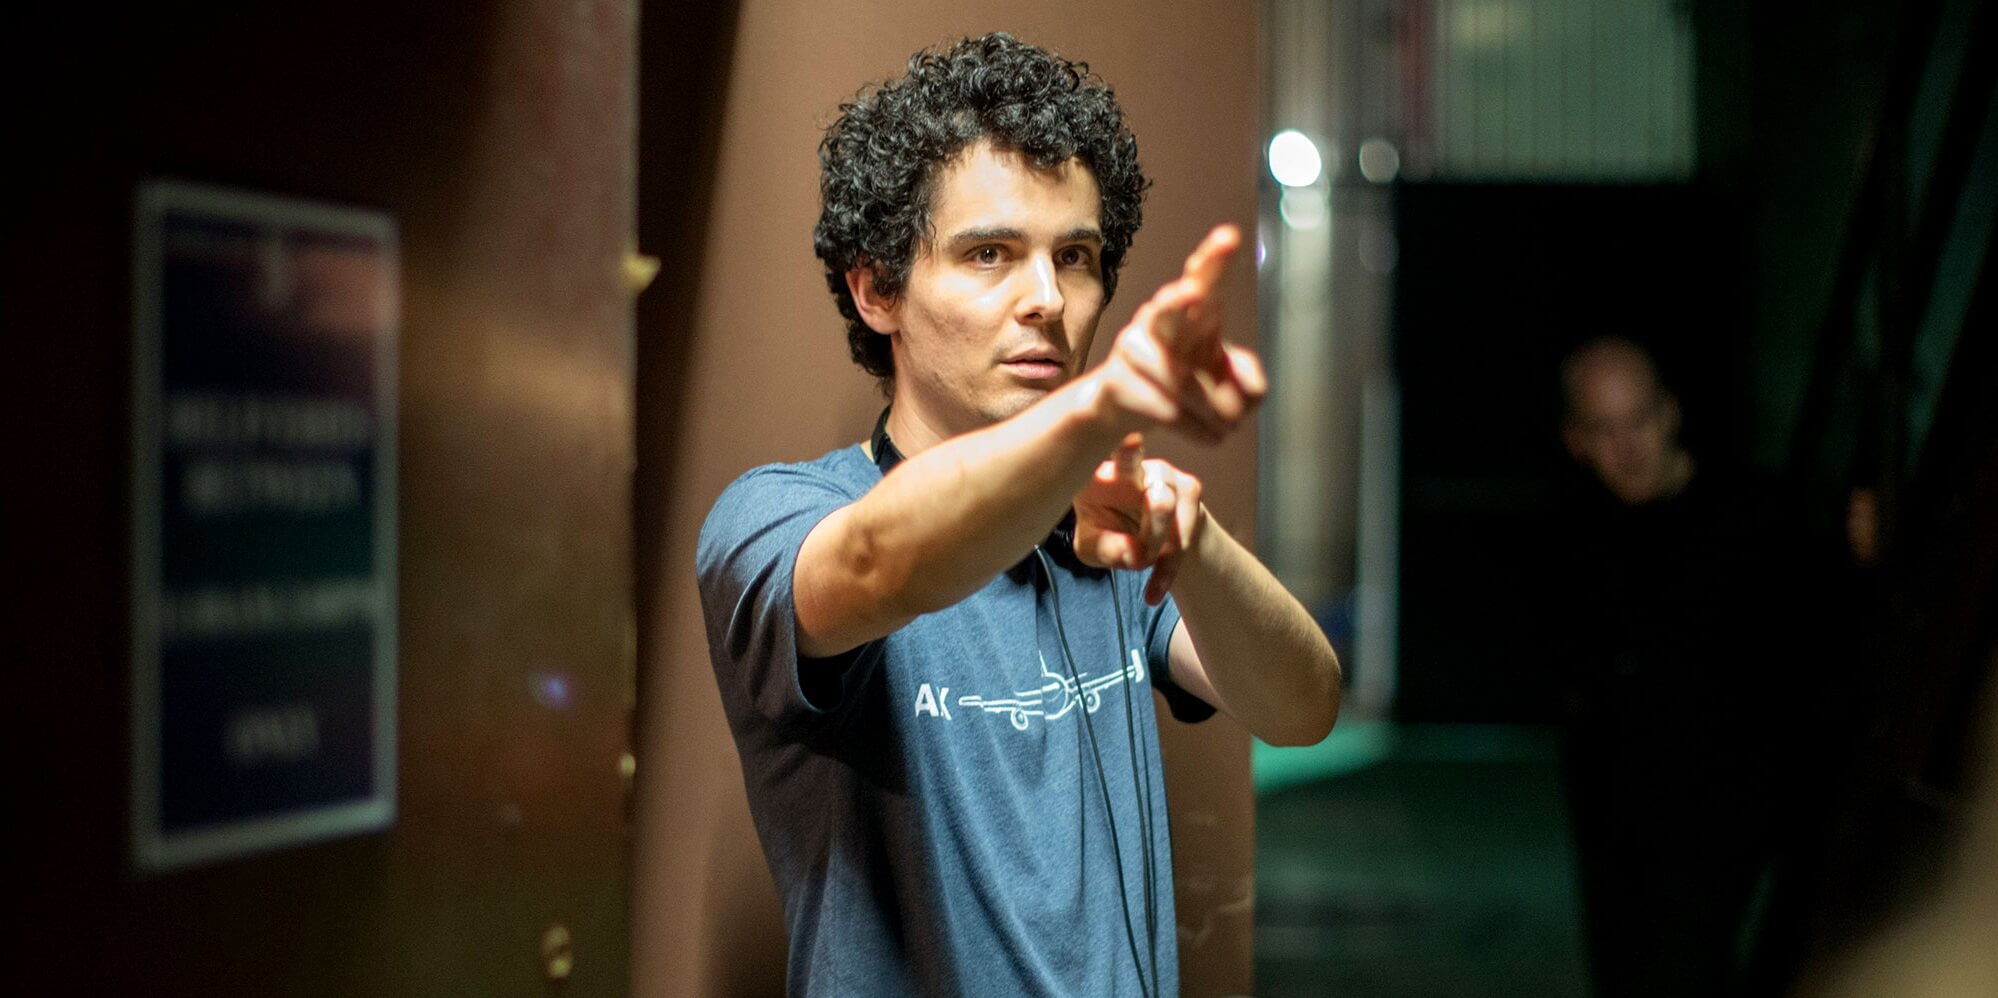 Damien chazelle on set 1  1